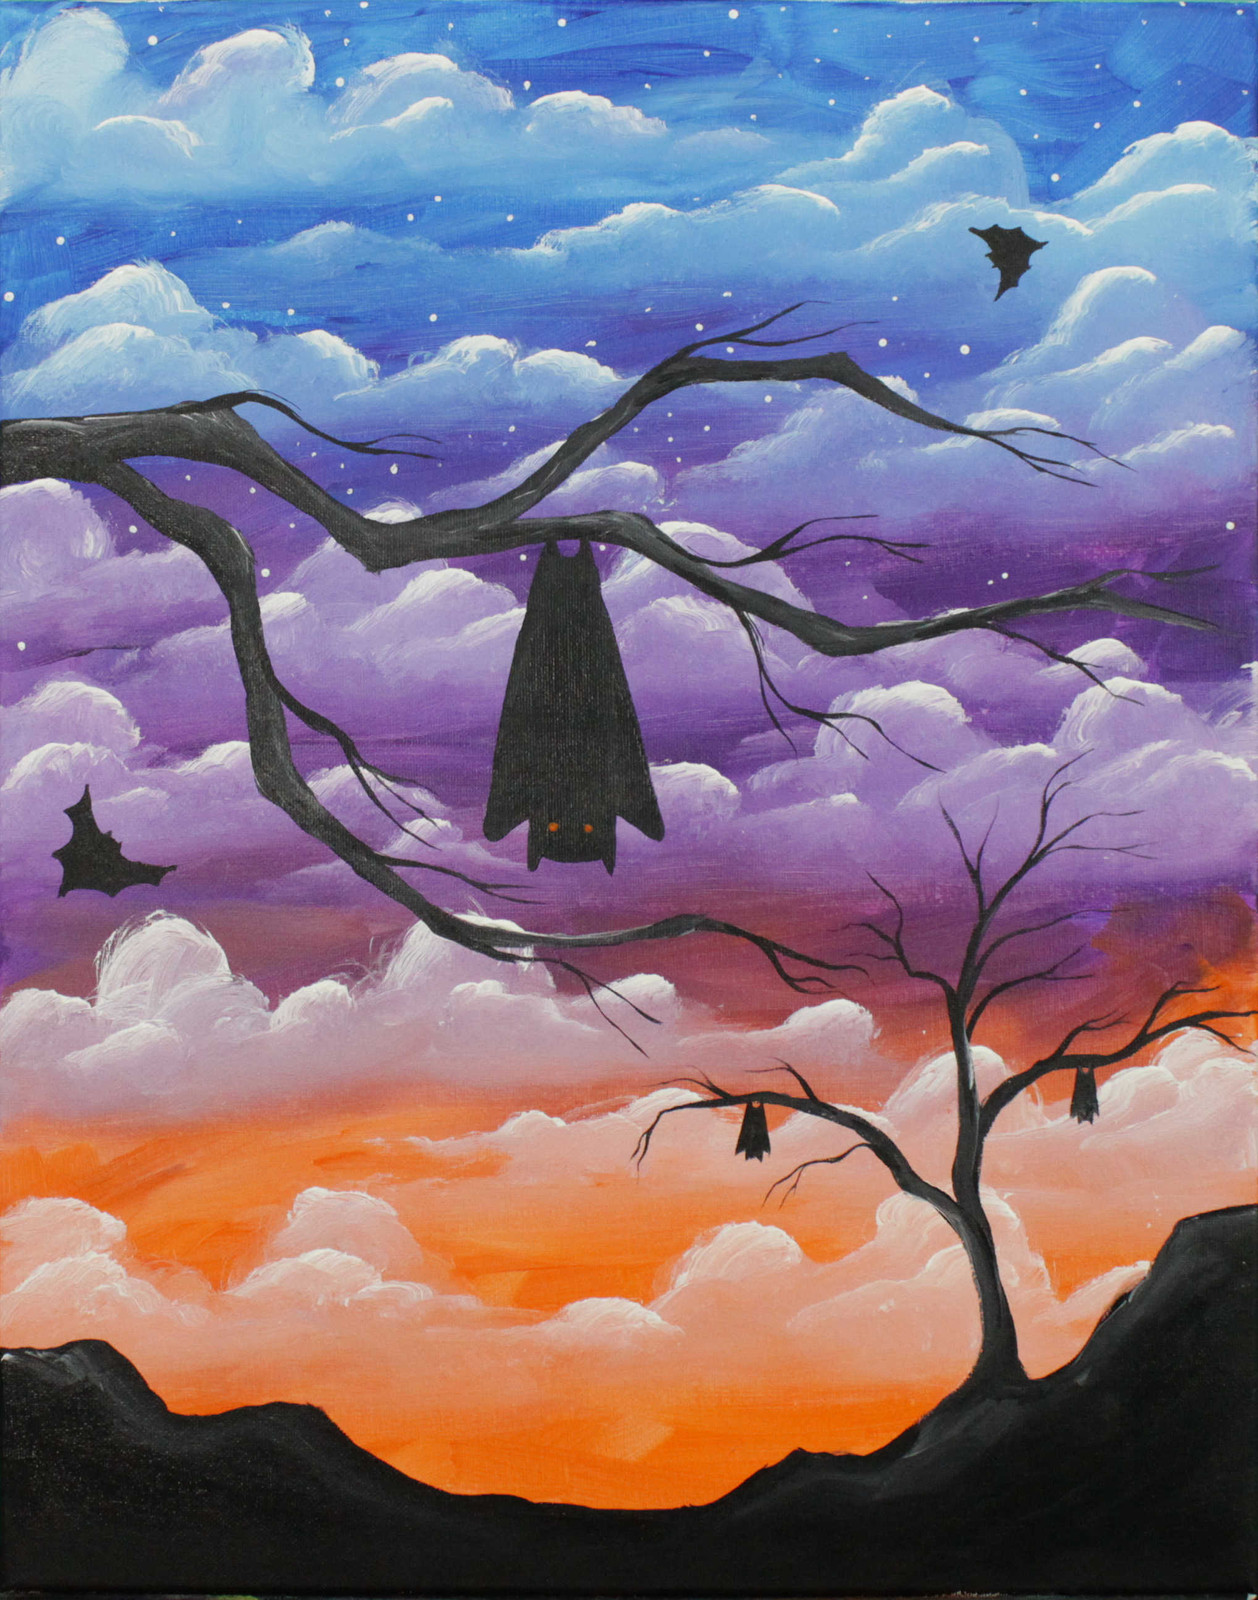 some fun and simple bats against a sky full of clouds 2016 by jane font all rights reserved